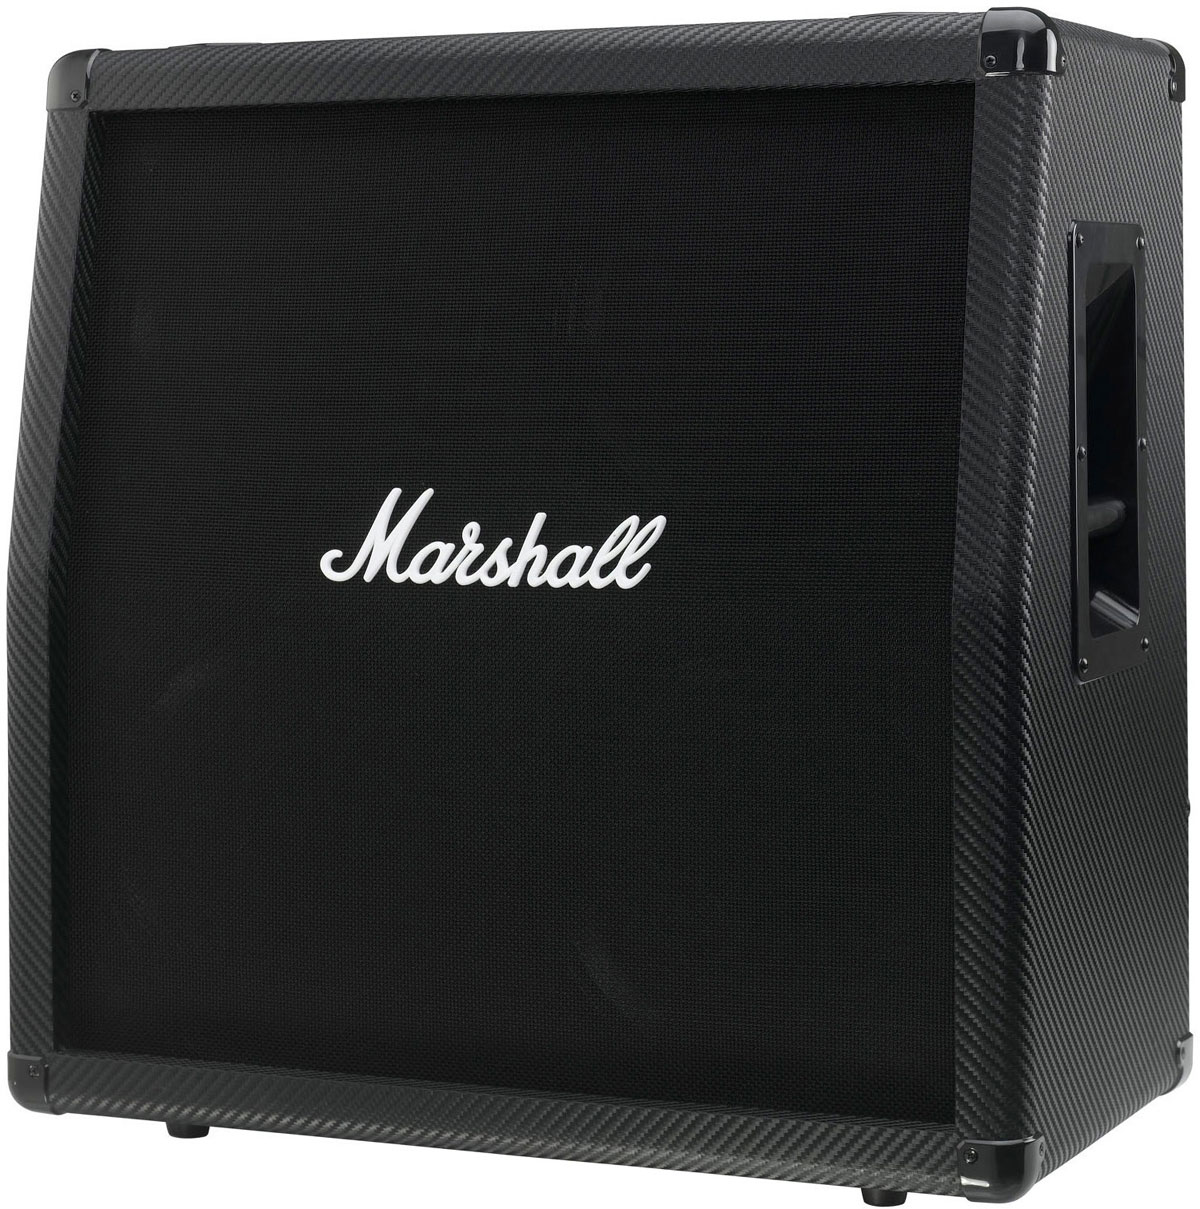 marshall m mg412acf e 4x12 angled guitar speaker cabinet mmg412acfe mar12 m mg412acf e. Black Bedroom Furniture Sets. Home Design Ideas